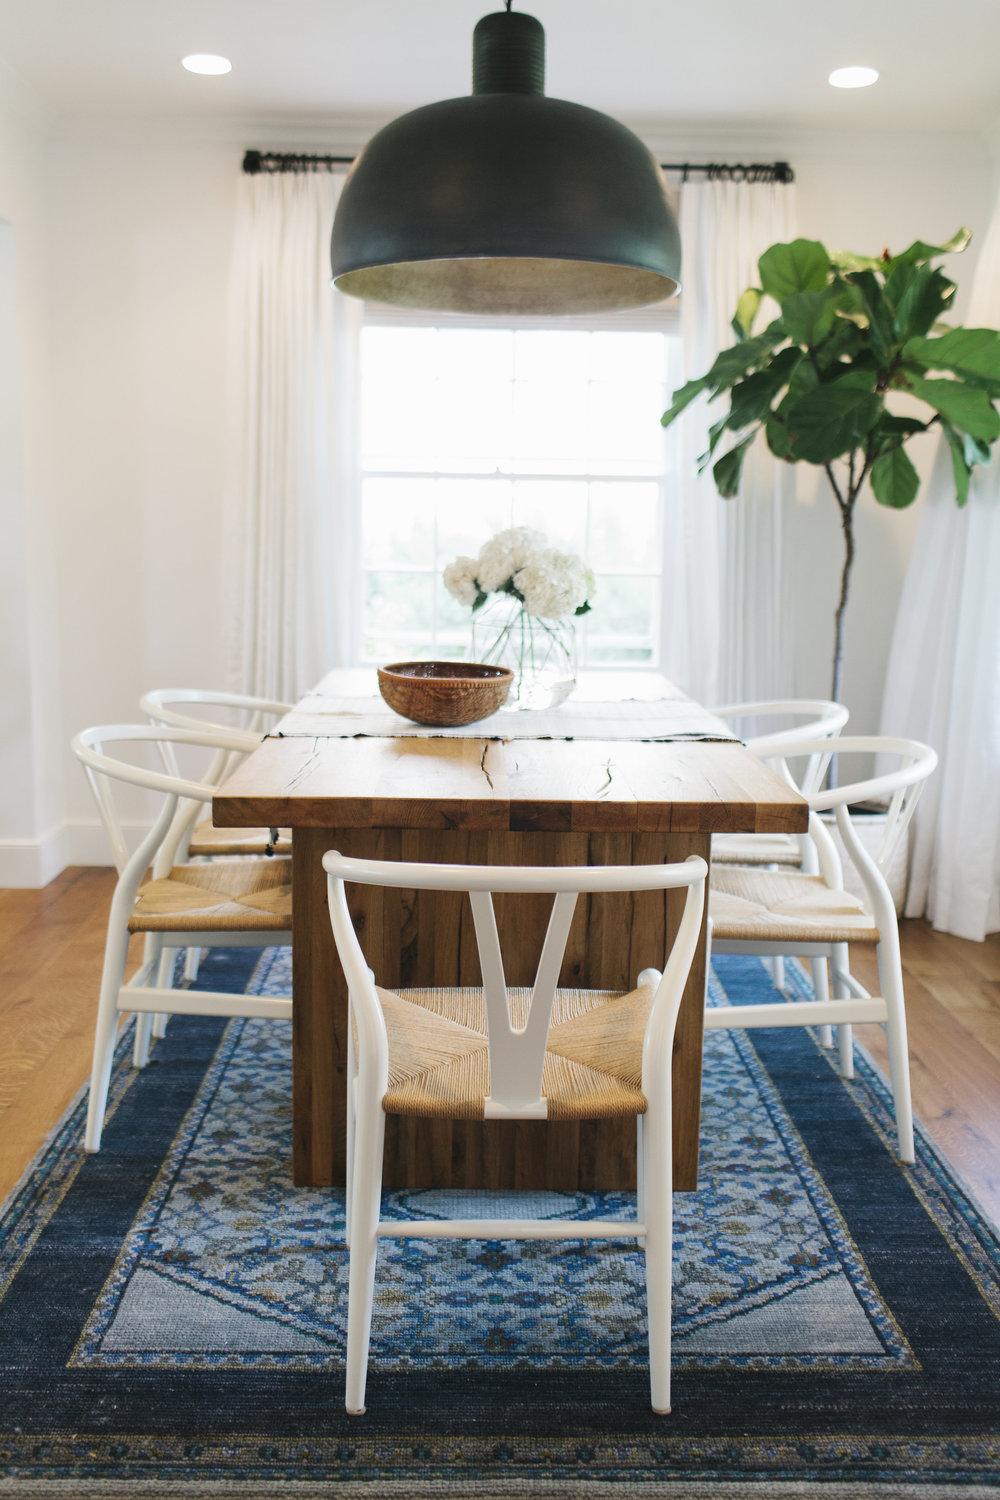 Wishbone chairs and navy rug || Studio McGee